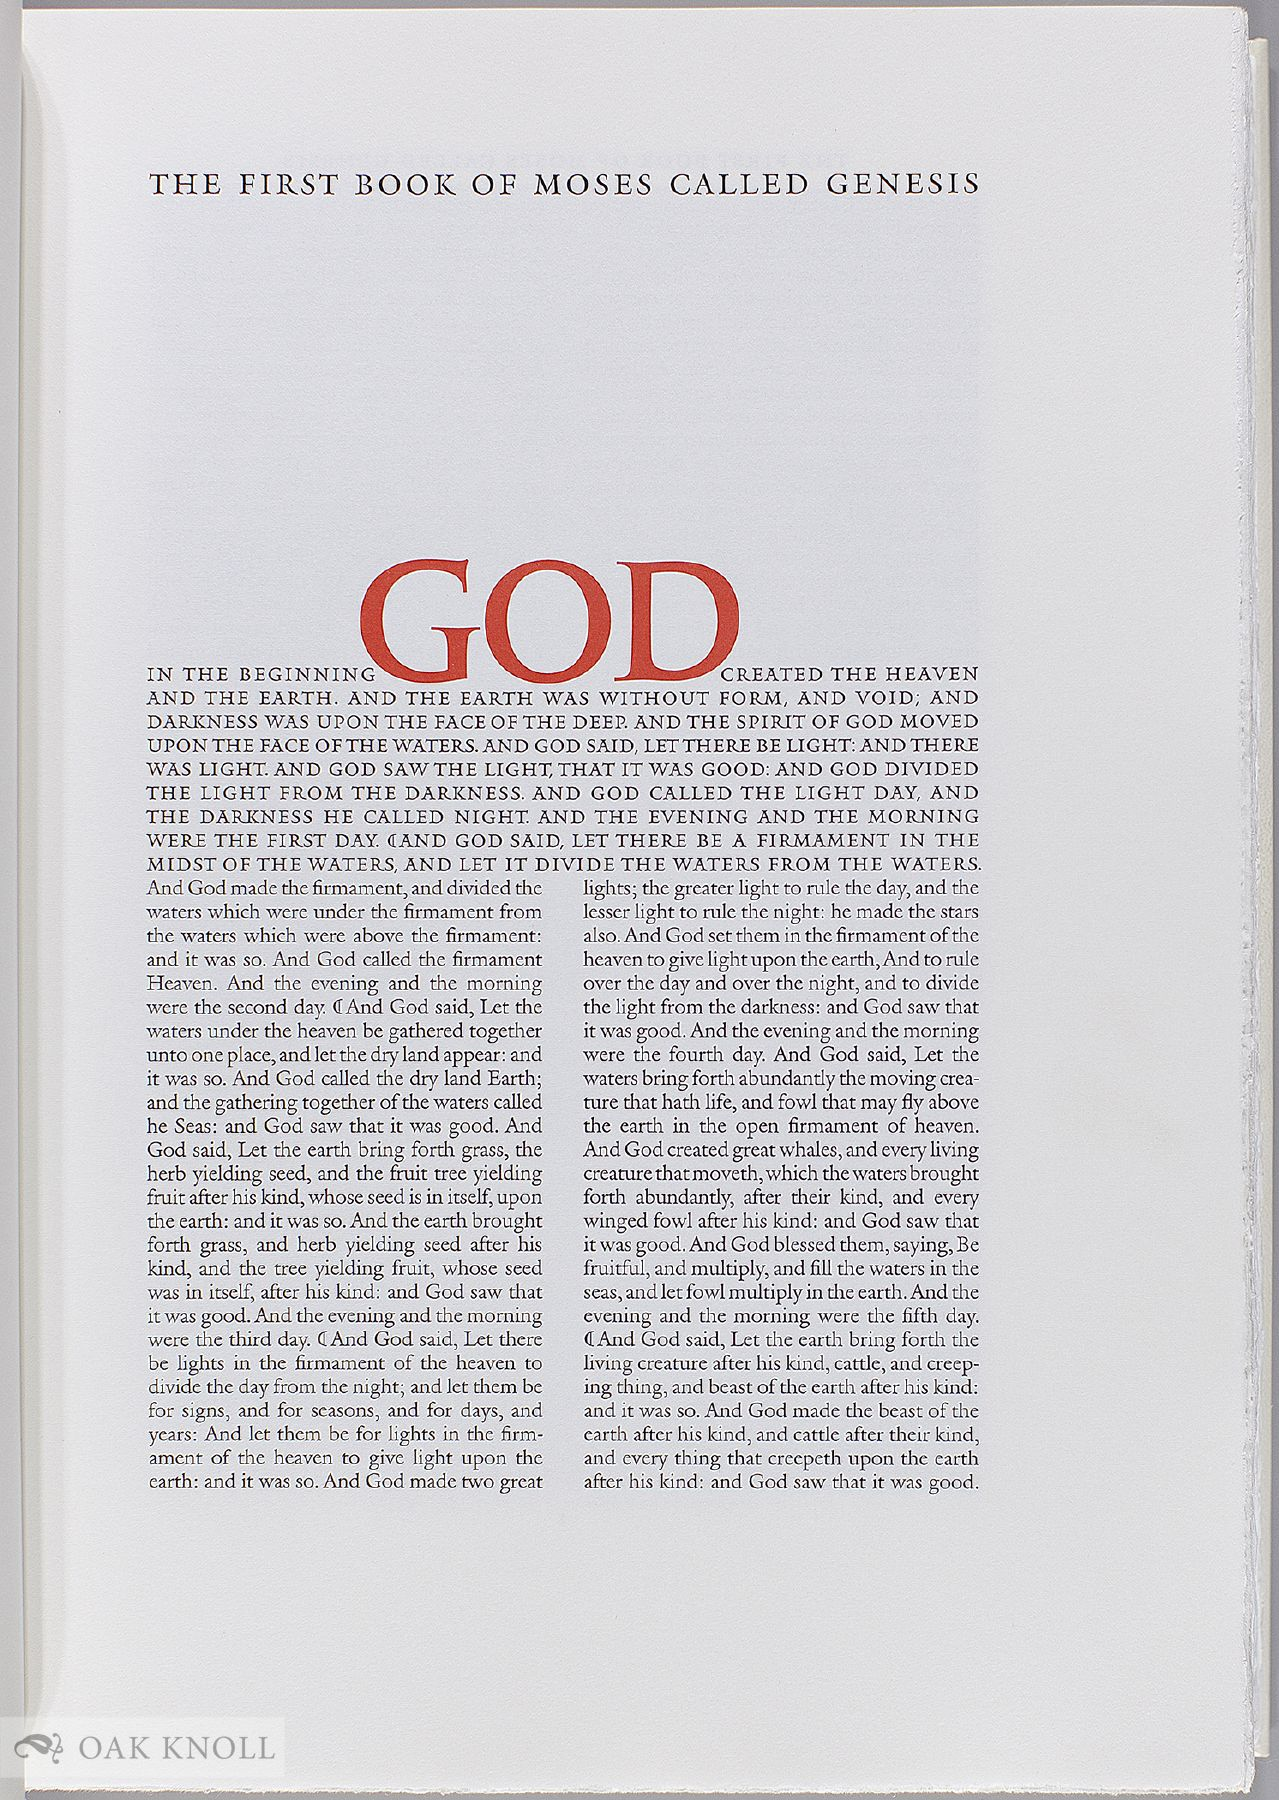 THE PRIVATELY PRINTED BIBLE: PRIVATE AND FINE PRESS PRINTINGS OF BIBLICAL  TEXTS, 1892-2000 by Ronald Patkus on Oak Knoll